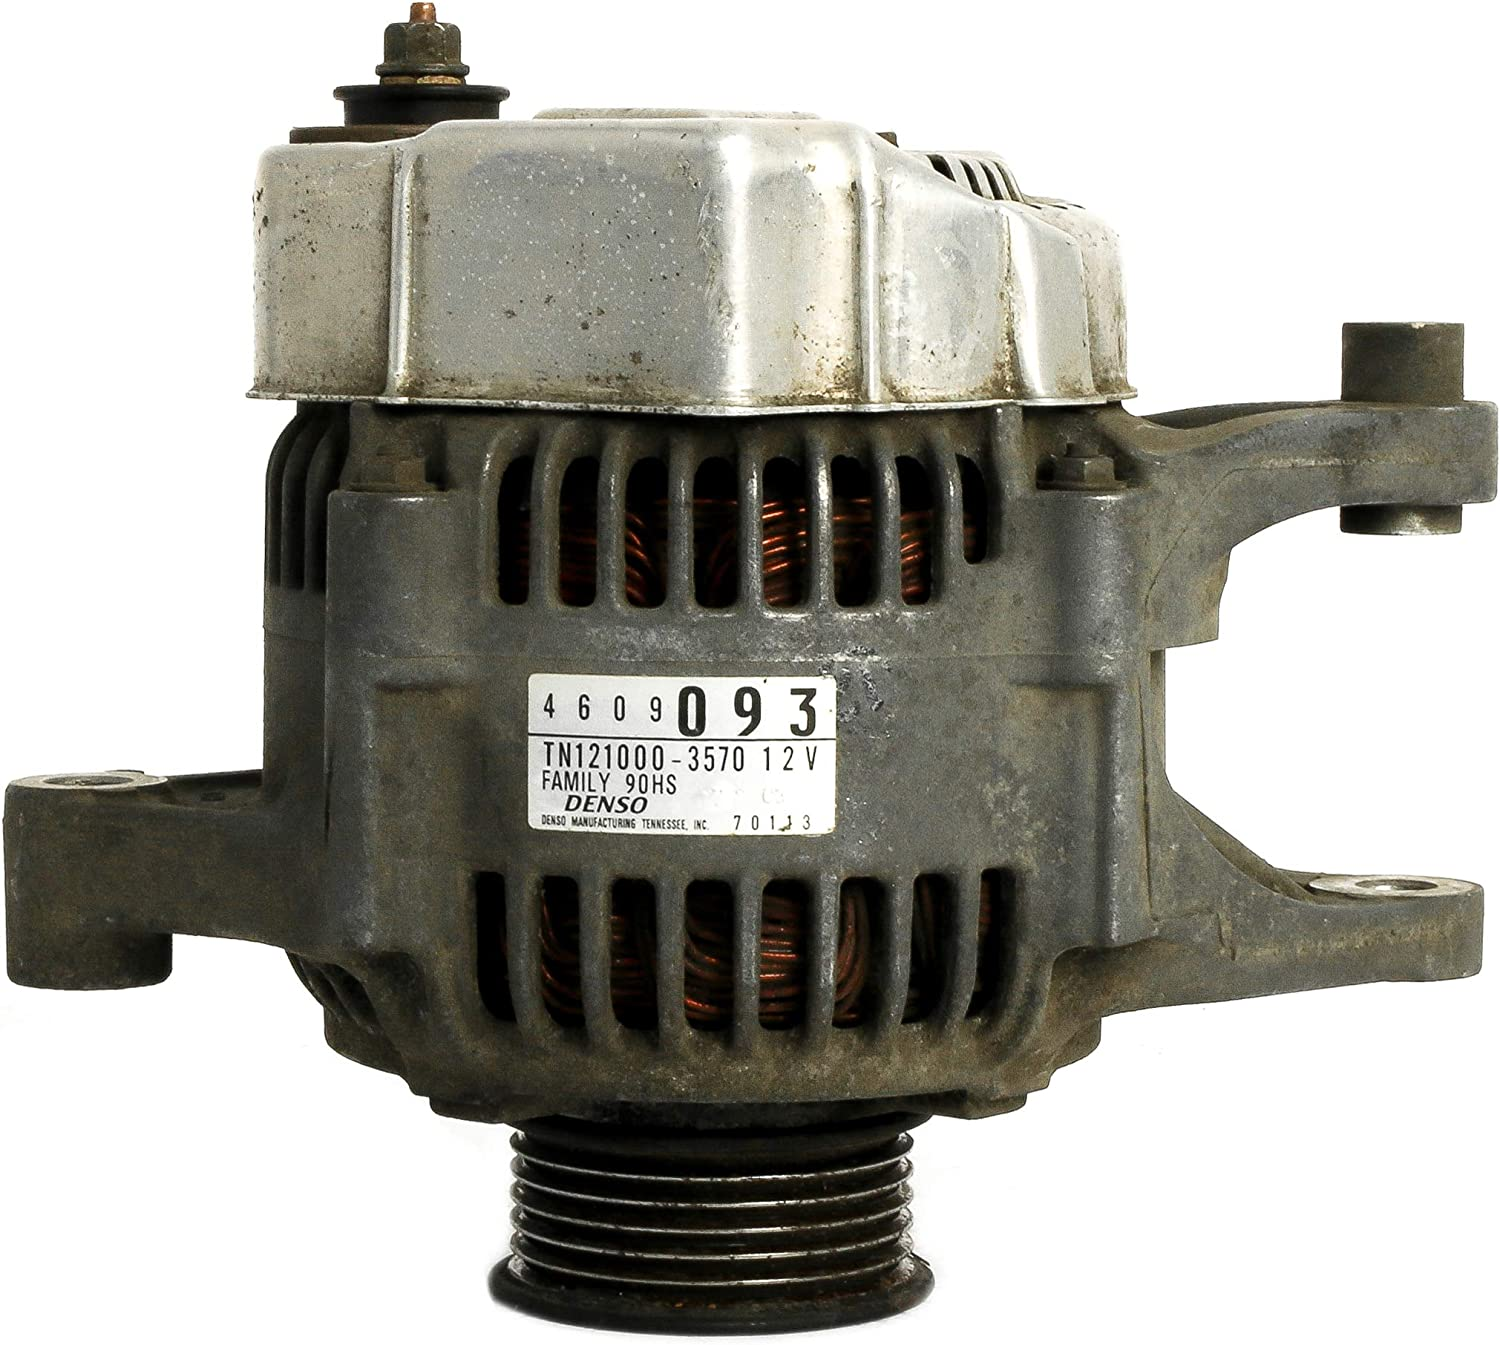 DENSO Alternator Chrysler Concorde Intrepid LHS NewYorker 1996-1997